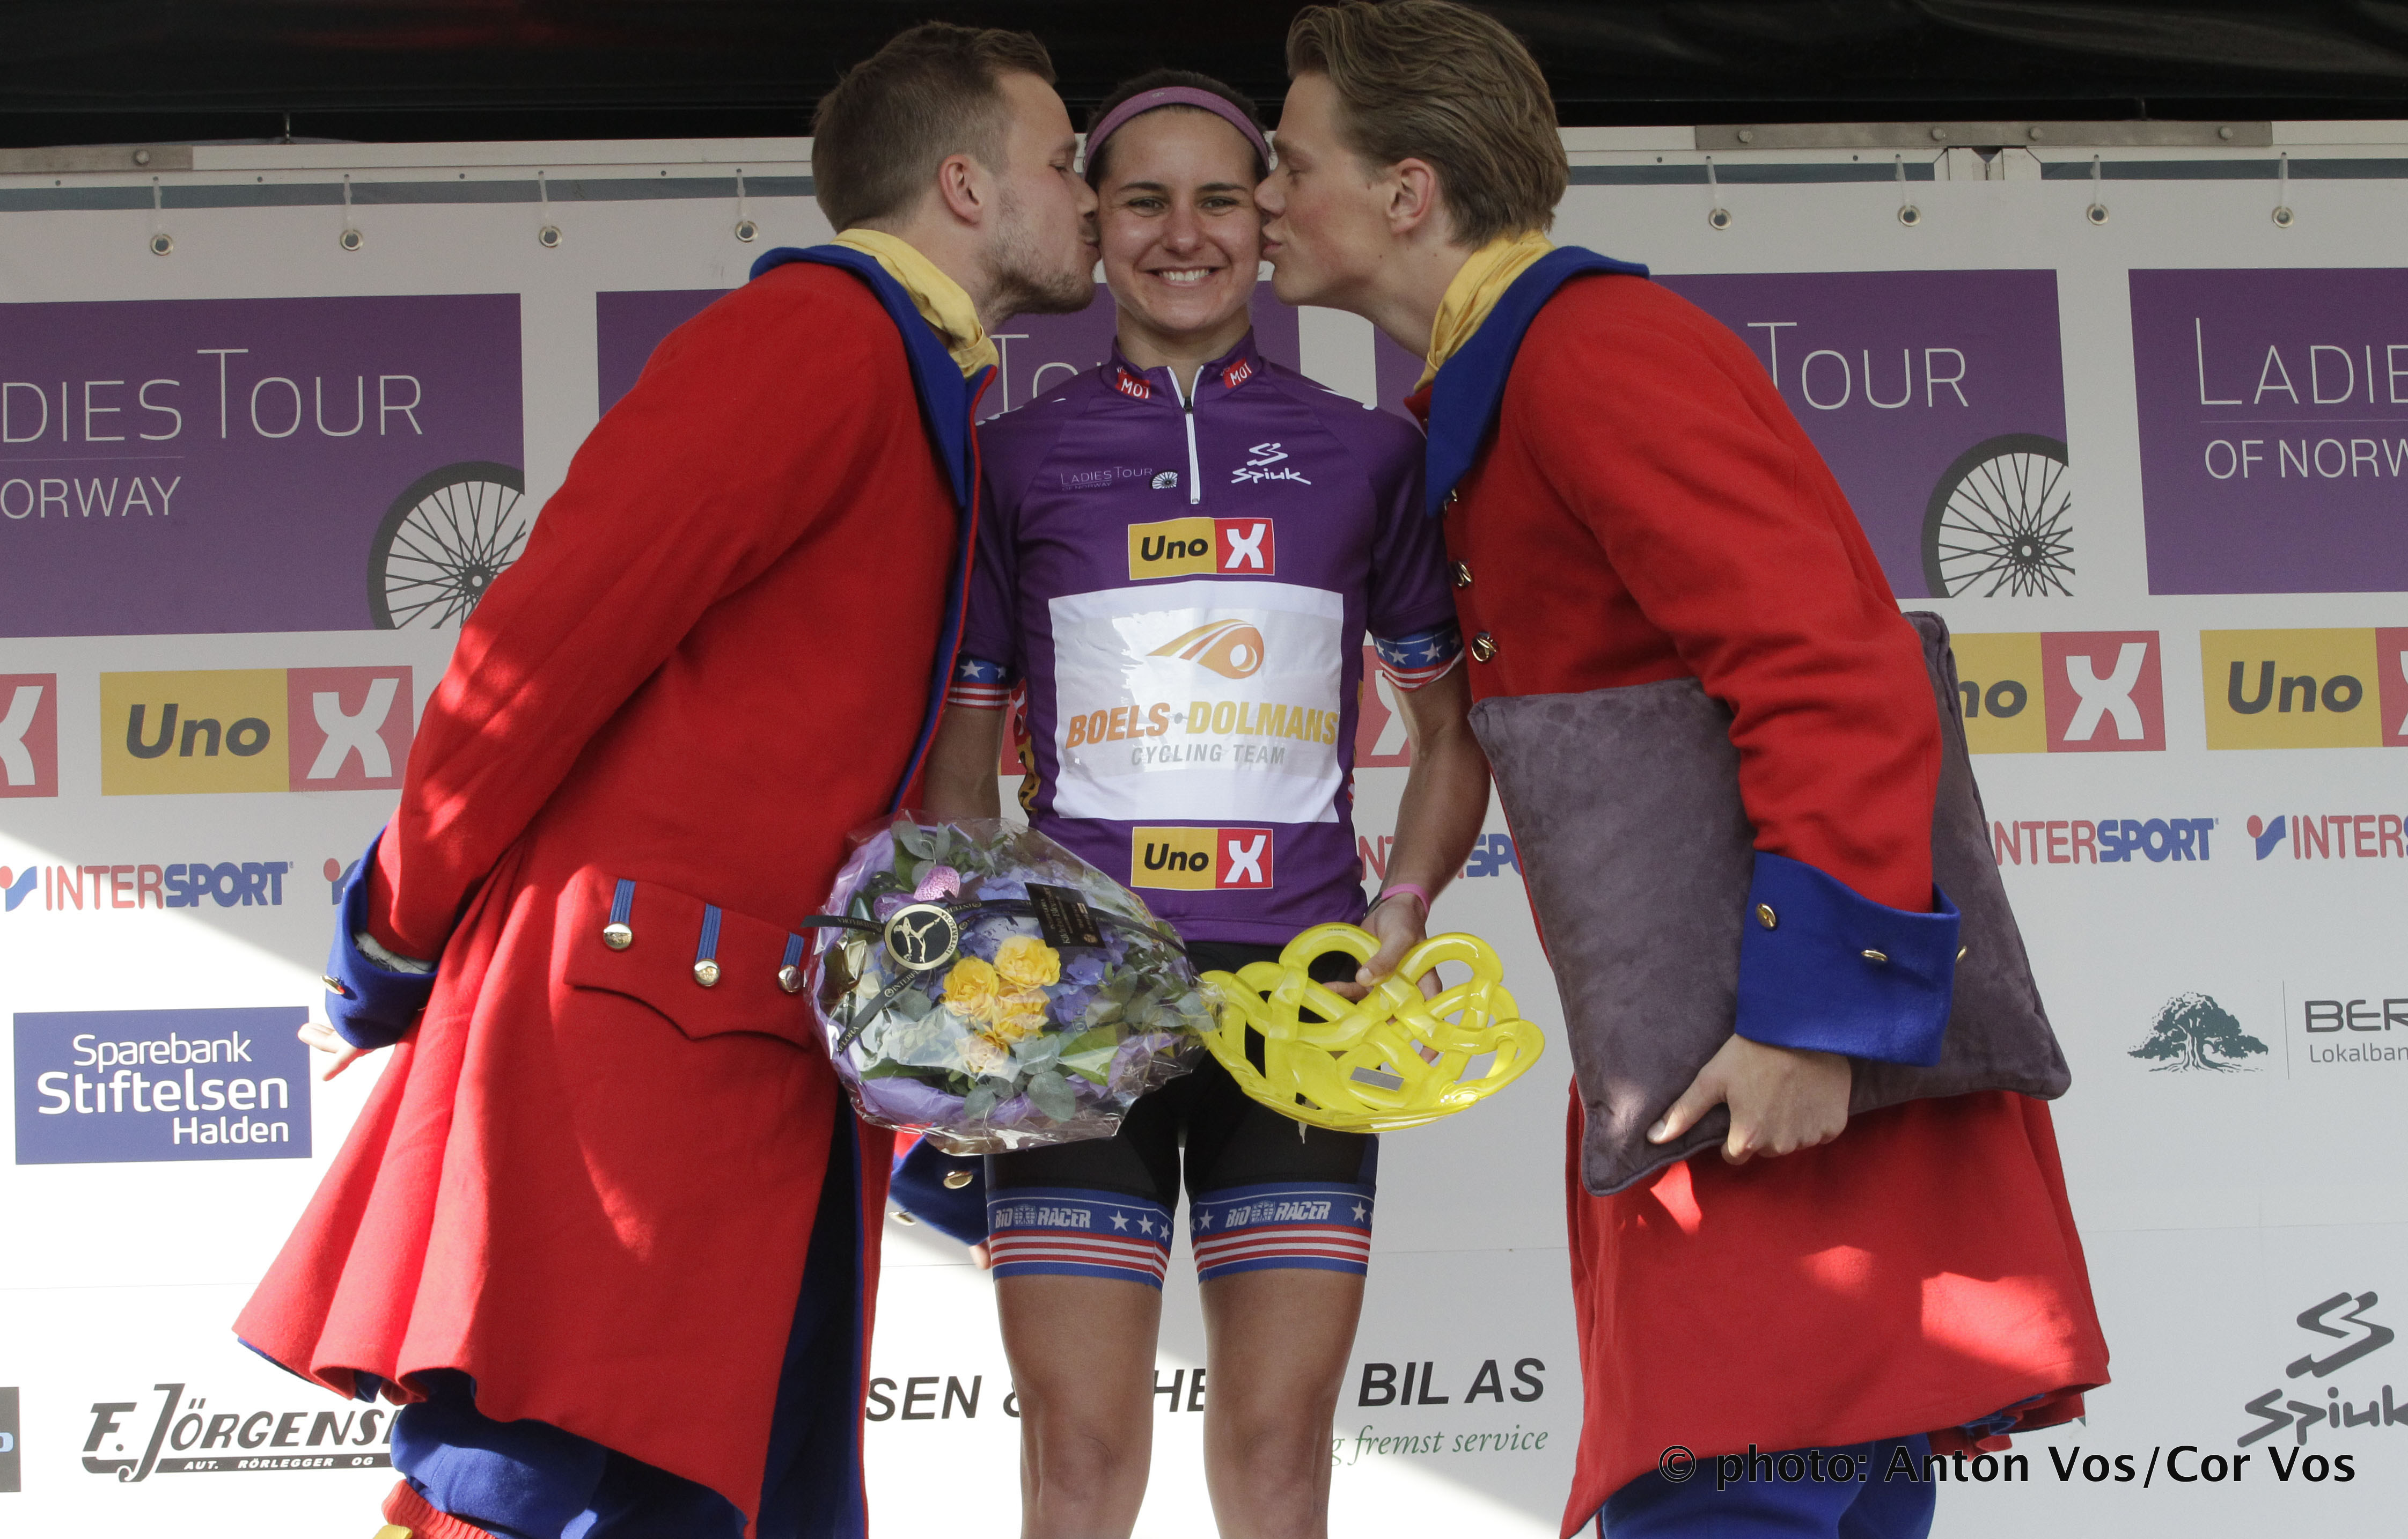 Halden - Norway - wielrennen - cycling - radsport - cyclisme - Guarnier Megan of Boels Dolmans Cycling Team  pictured during  stage - 1 of the Ladiestour of Norway 2015 - photo Anton Vos/Cor Vos © 2015